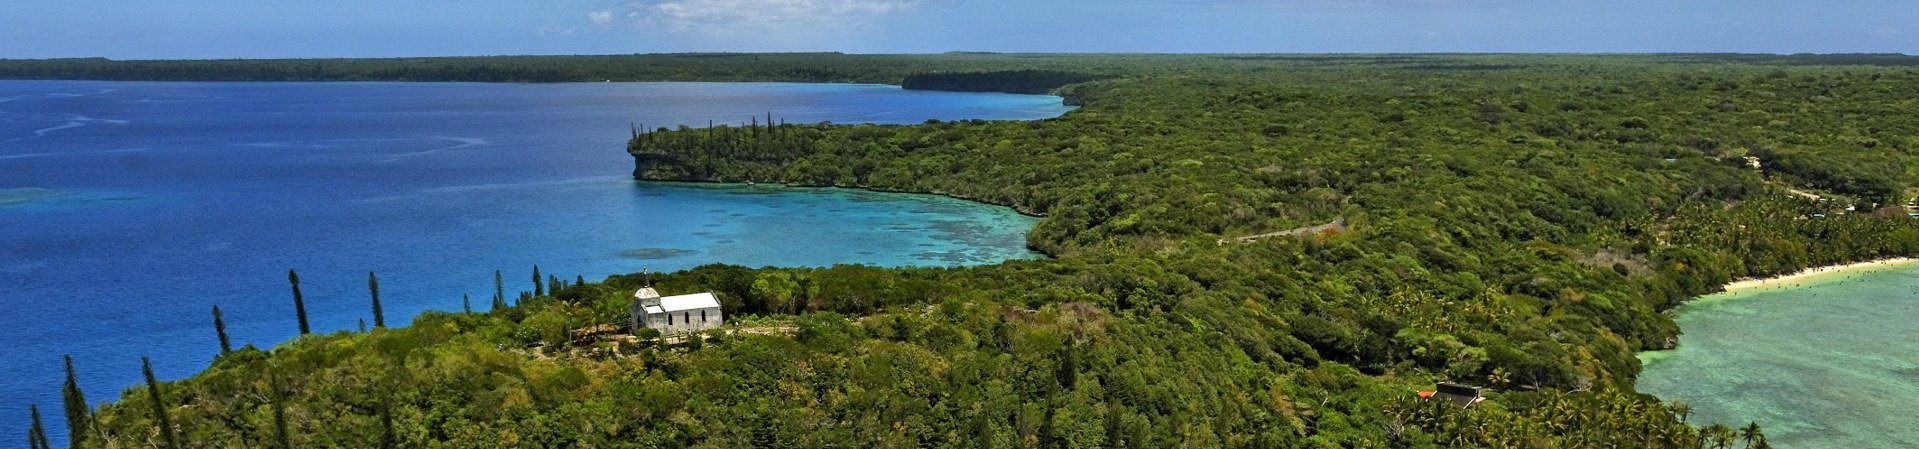 Lagoon of Lifou